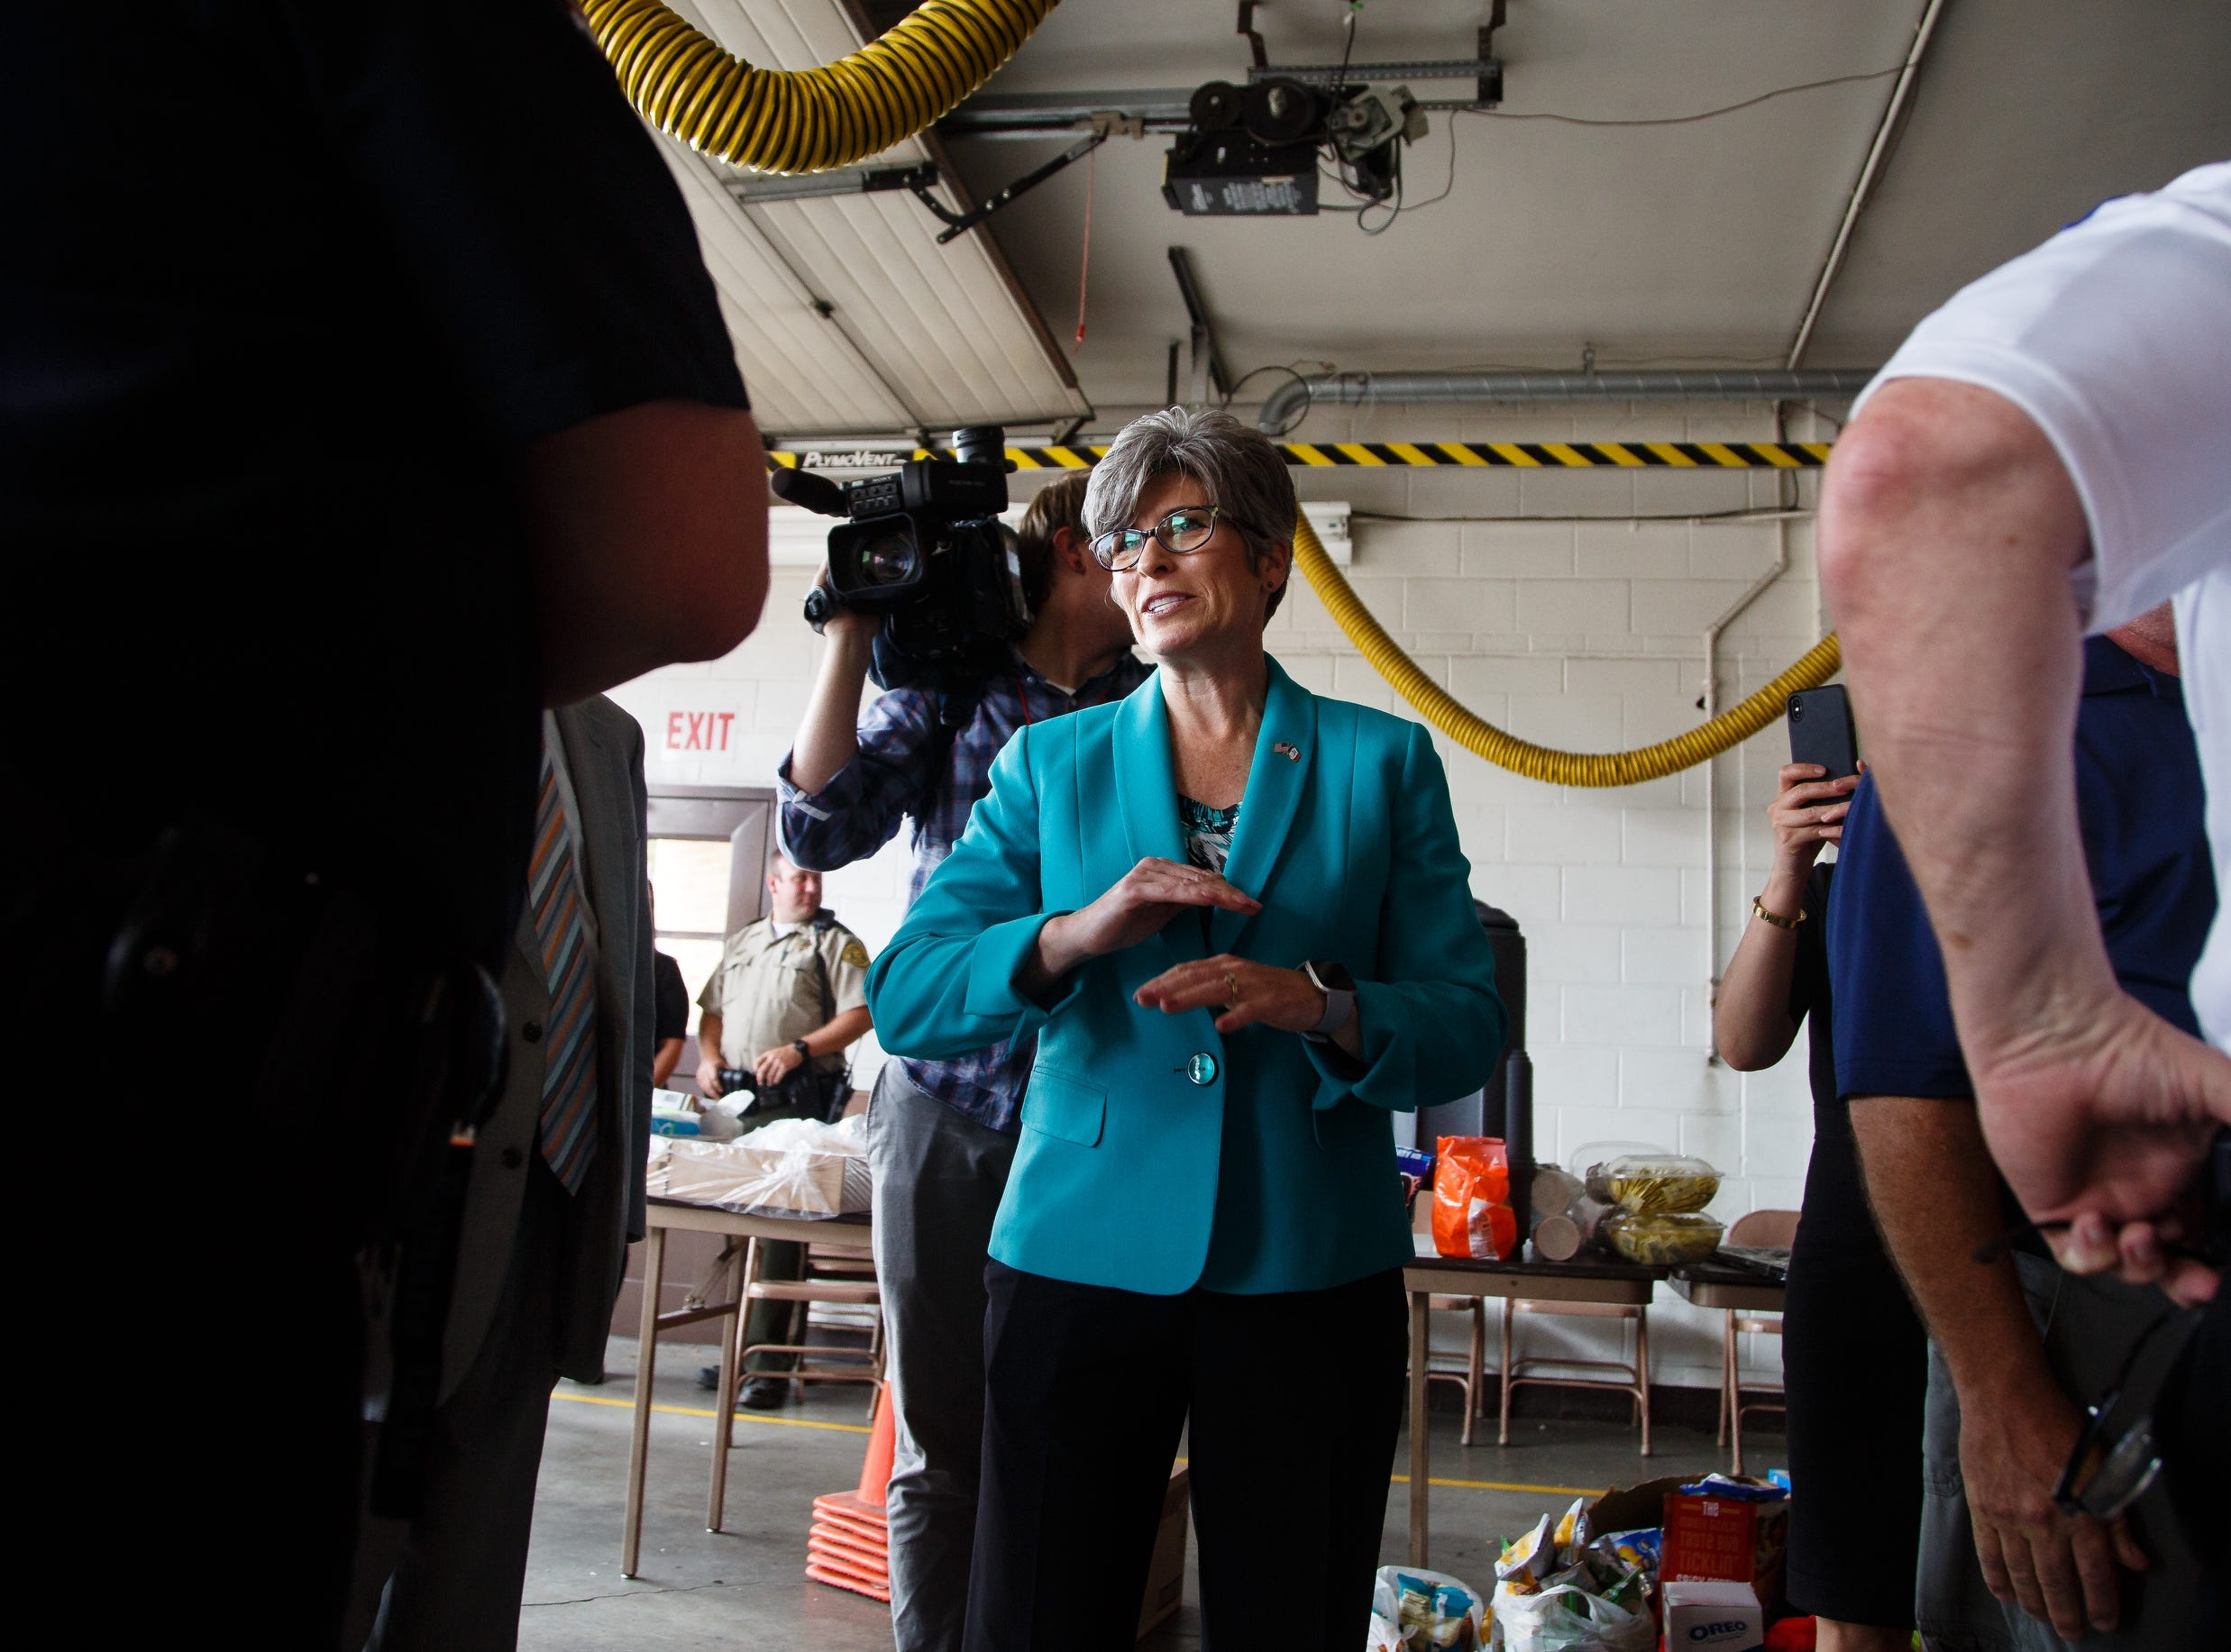 Sen. Joni Ernst arrives to tour the damage in Marshalltown on Friday, July 20, 2018. Yesterday, tornadoes ripped through central Iowa causing major damage but only minor injuries have been reported so far.